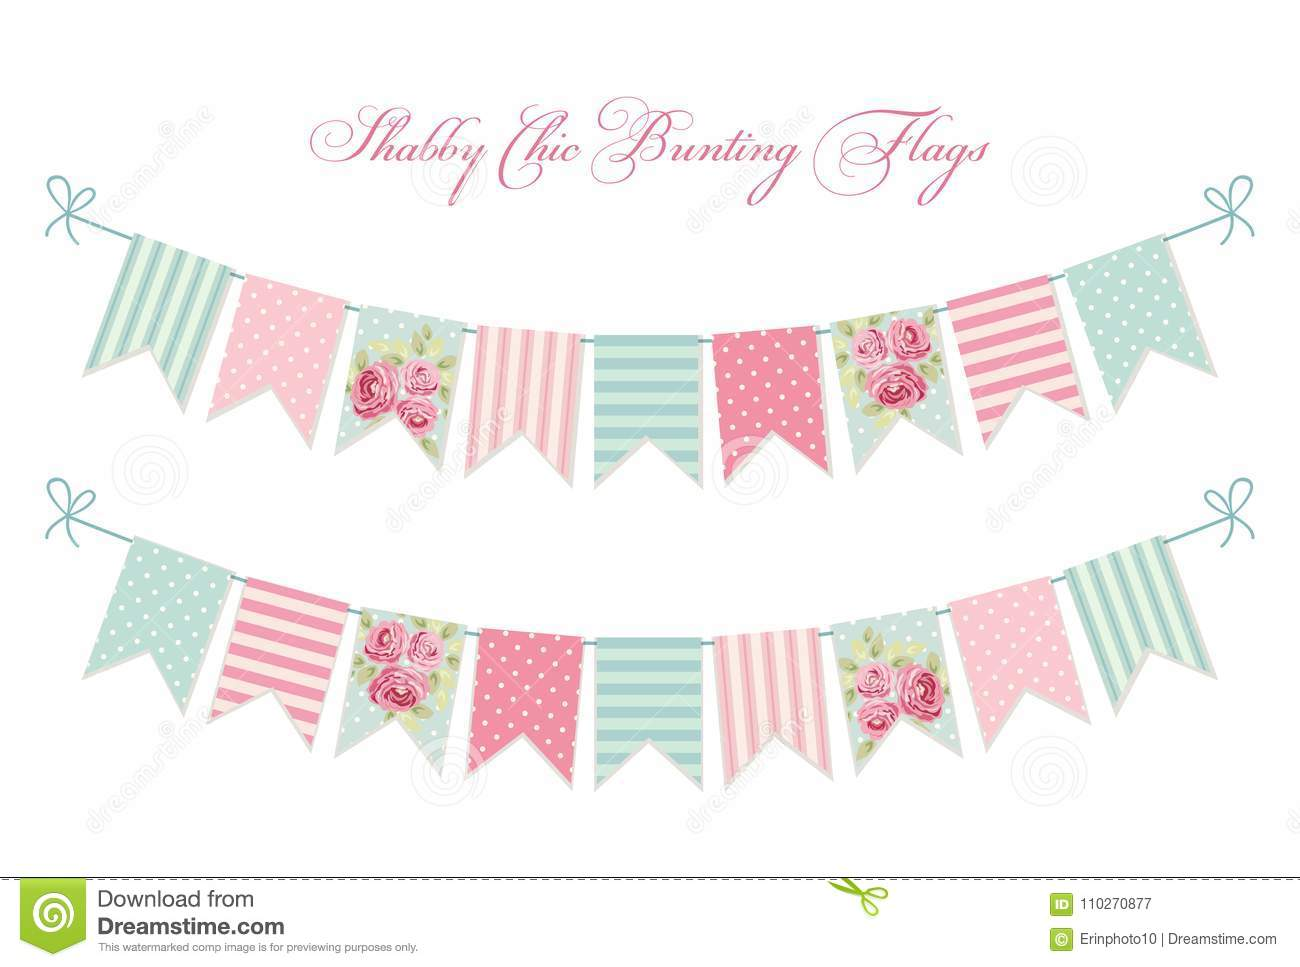 cute vintage shabby chic textile bunting flags stock vector rh dreamstime com shabby chic bunting uk shabby chic bunting vector